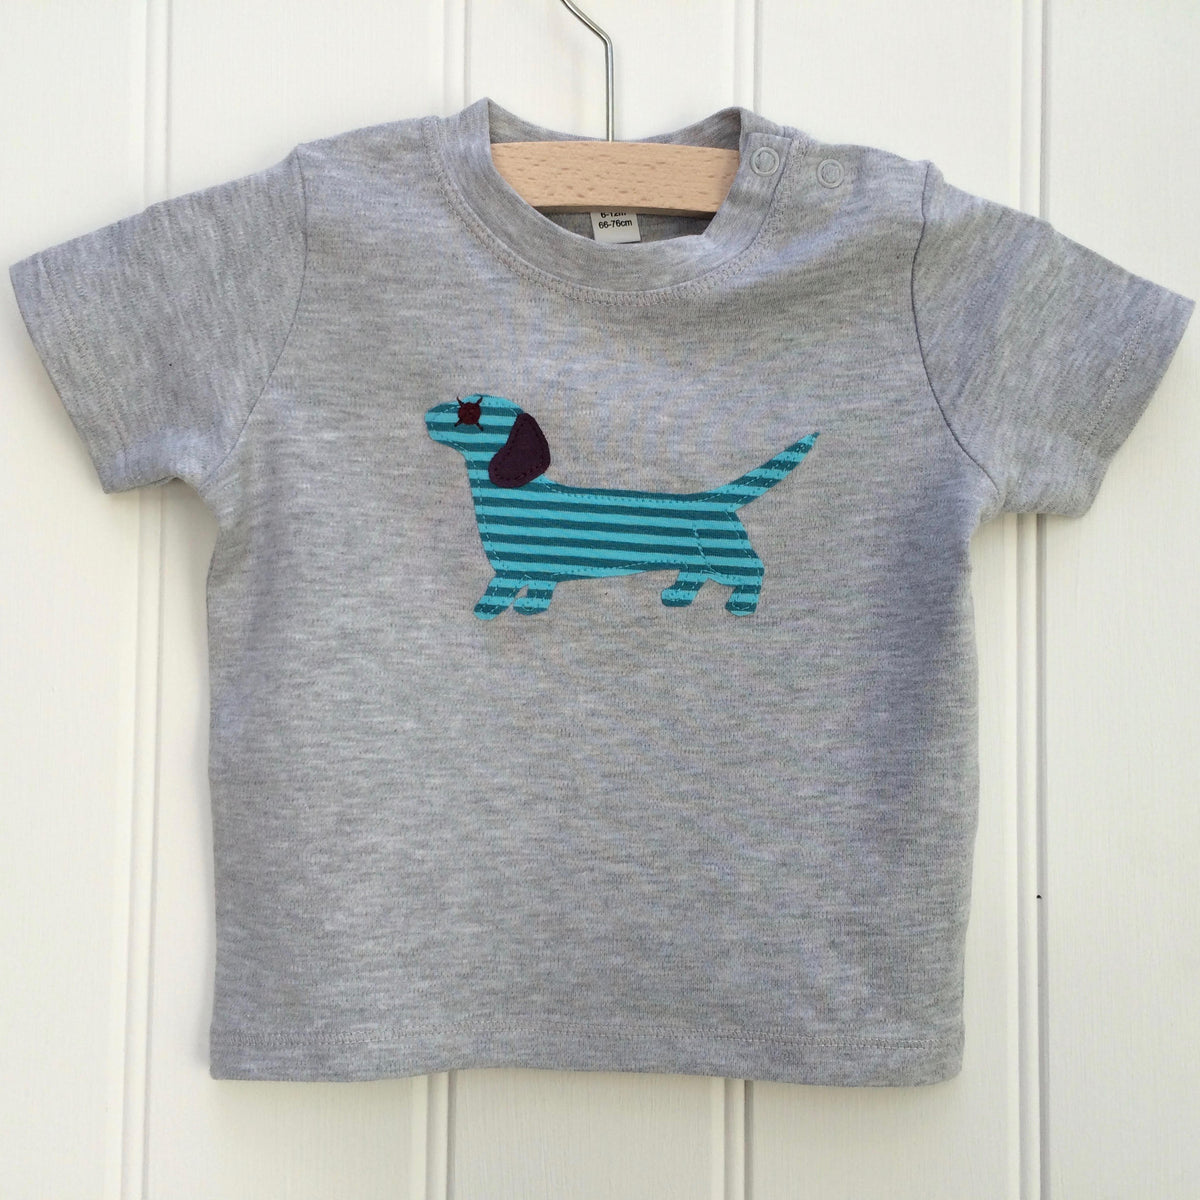 7ab7a8594 Baby Dachshund T-shirt - isabee.co.uk